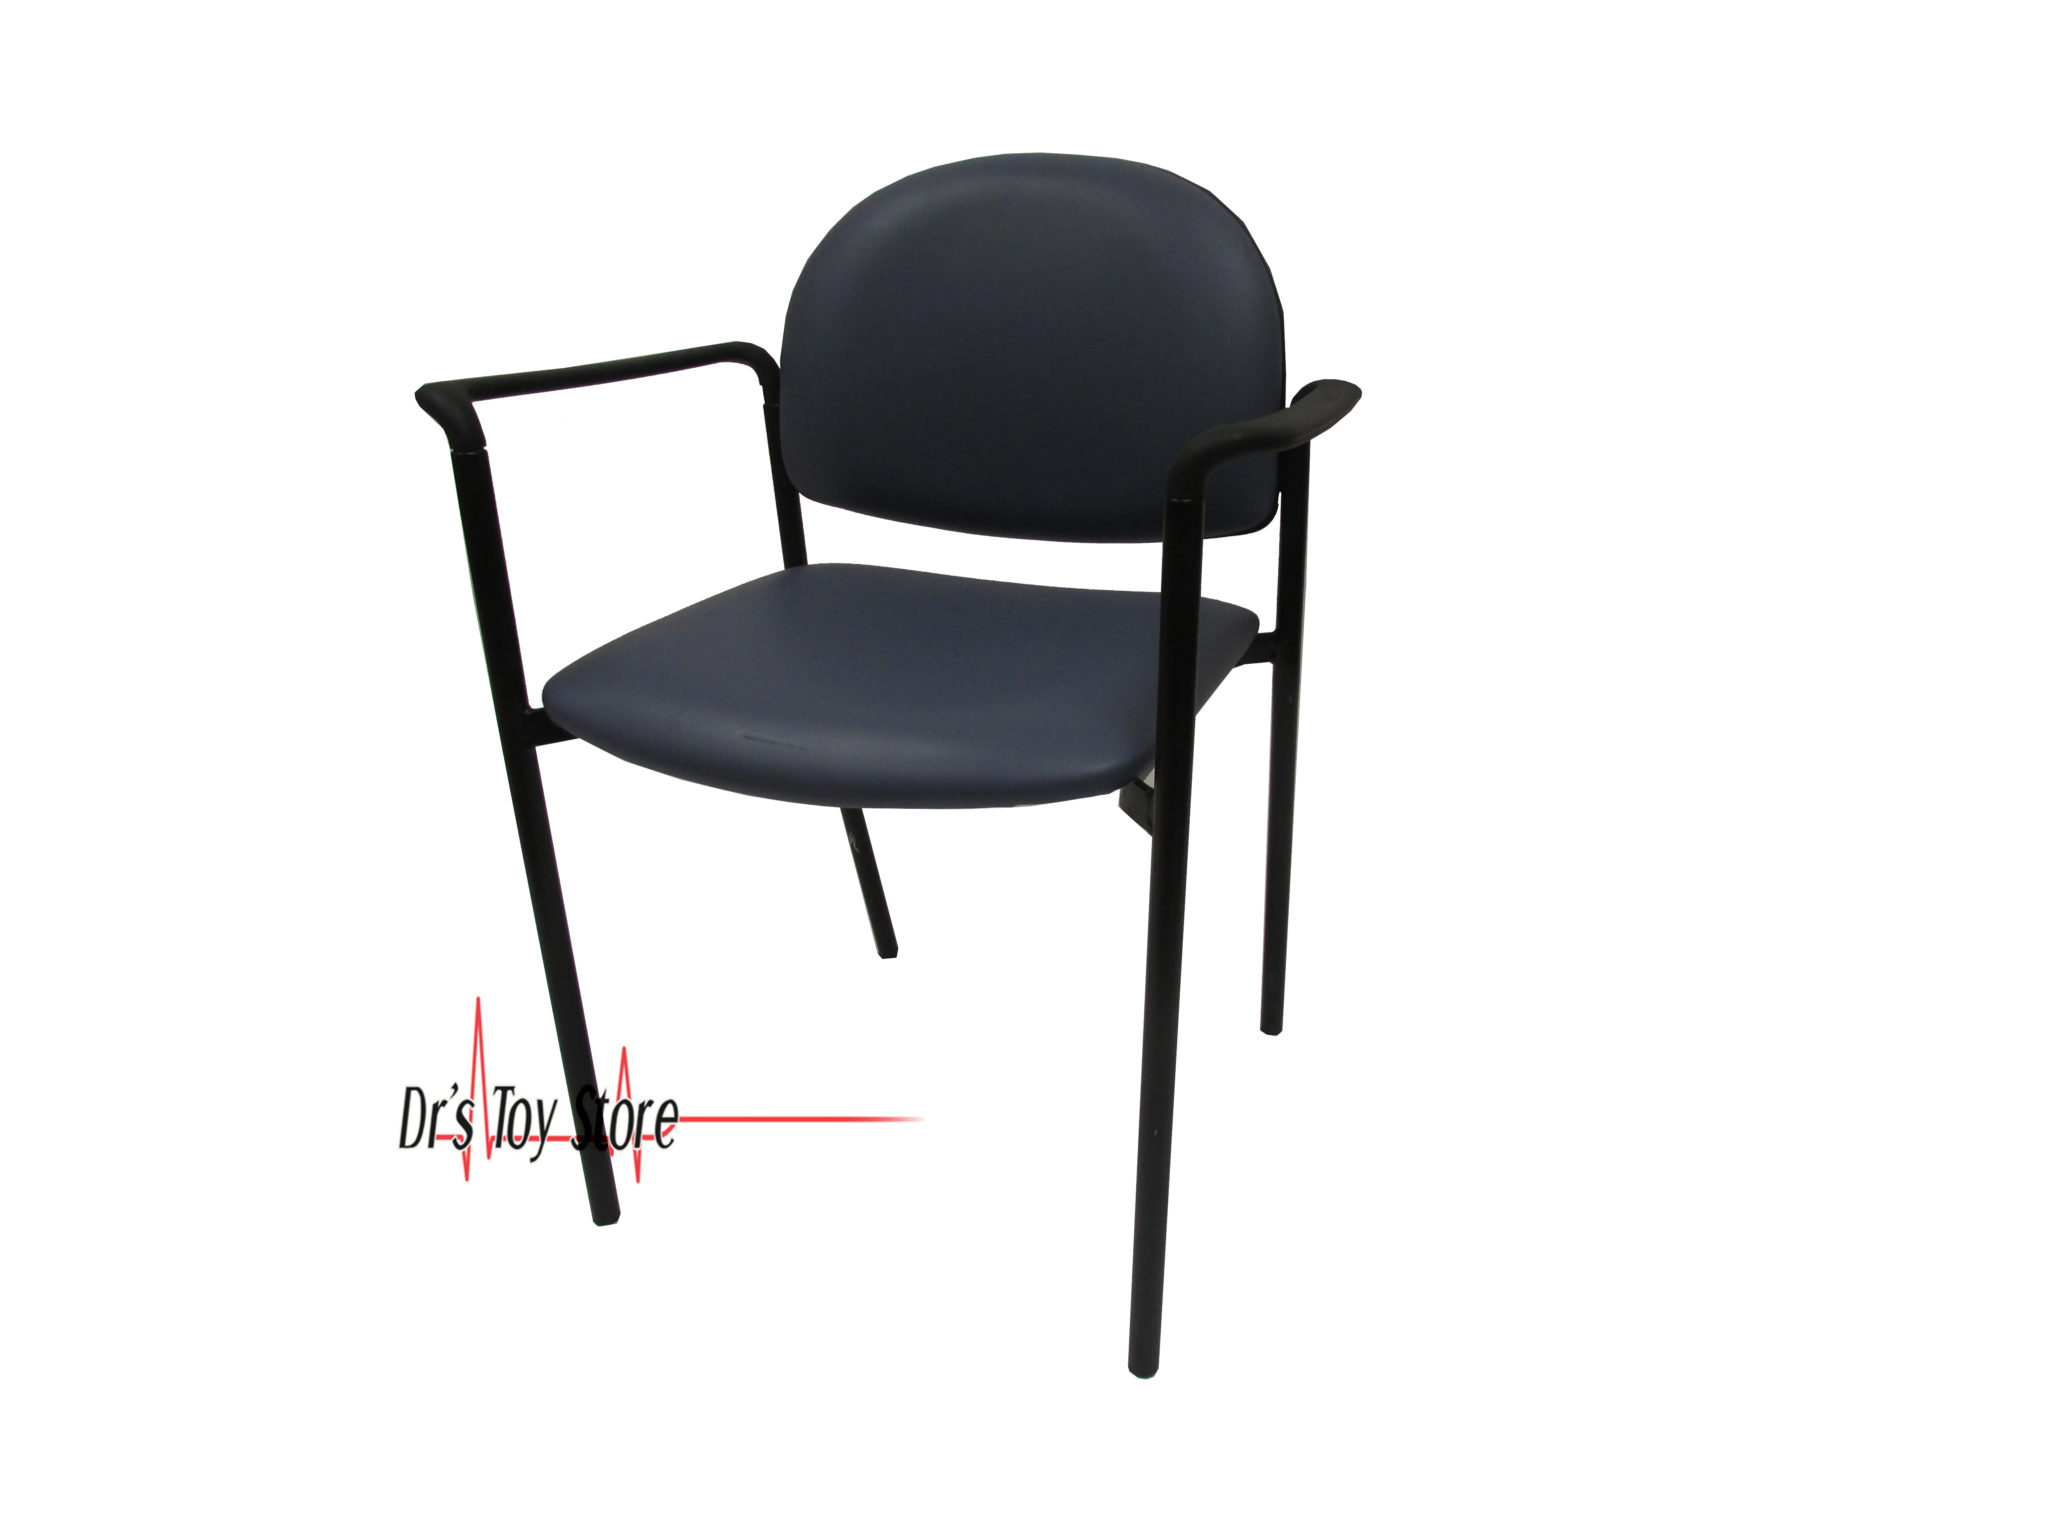 waiting room chairs for sale spandex chair covers canada w arm rest at dr 39s toy store